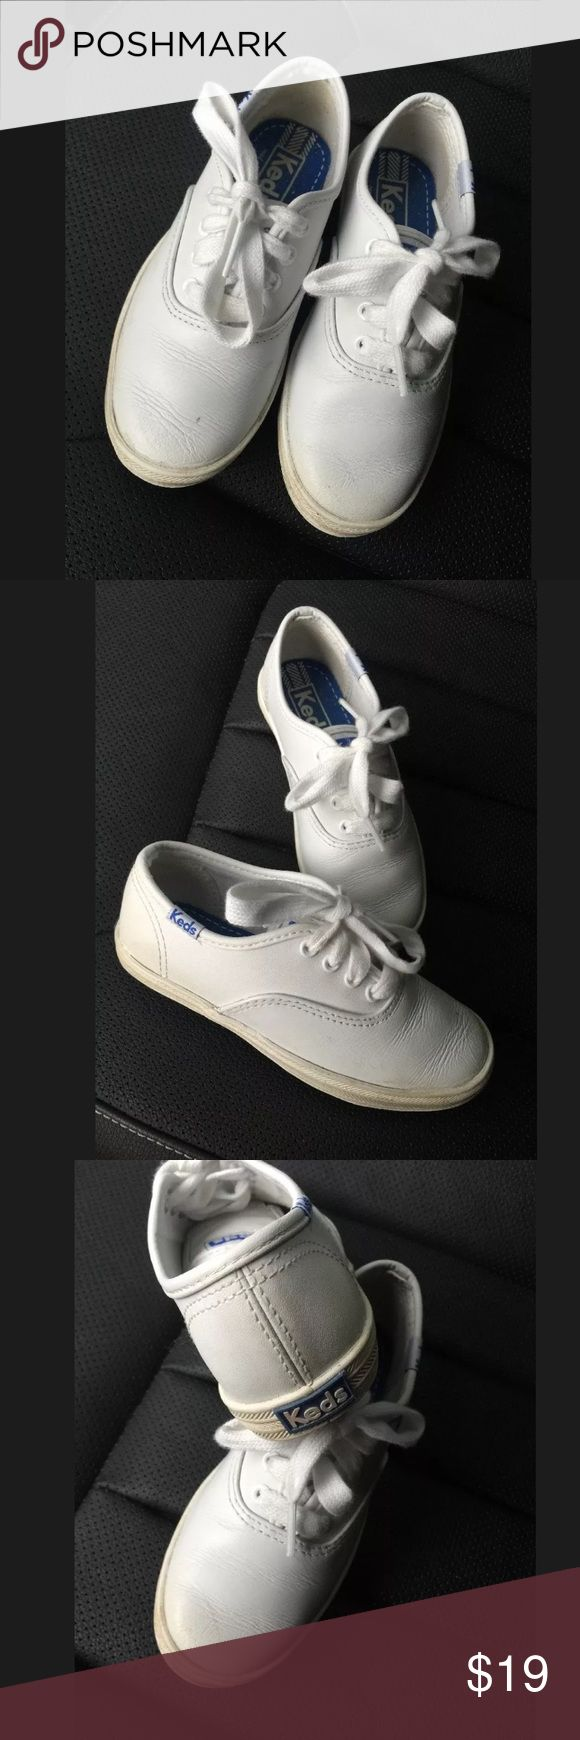 Girls champion white leather keds Sz 10.5 Fantastic pair of classic champion white leather sneakers !  Girls size 10.5 My daughter only wore these twice before she had a growth spurt. They should clean up just fine to looking almost new    Smoke/pet free home Keds Shoes Sneakers